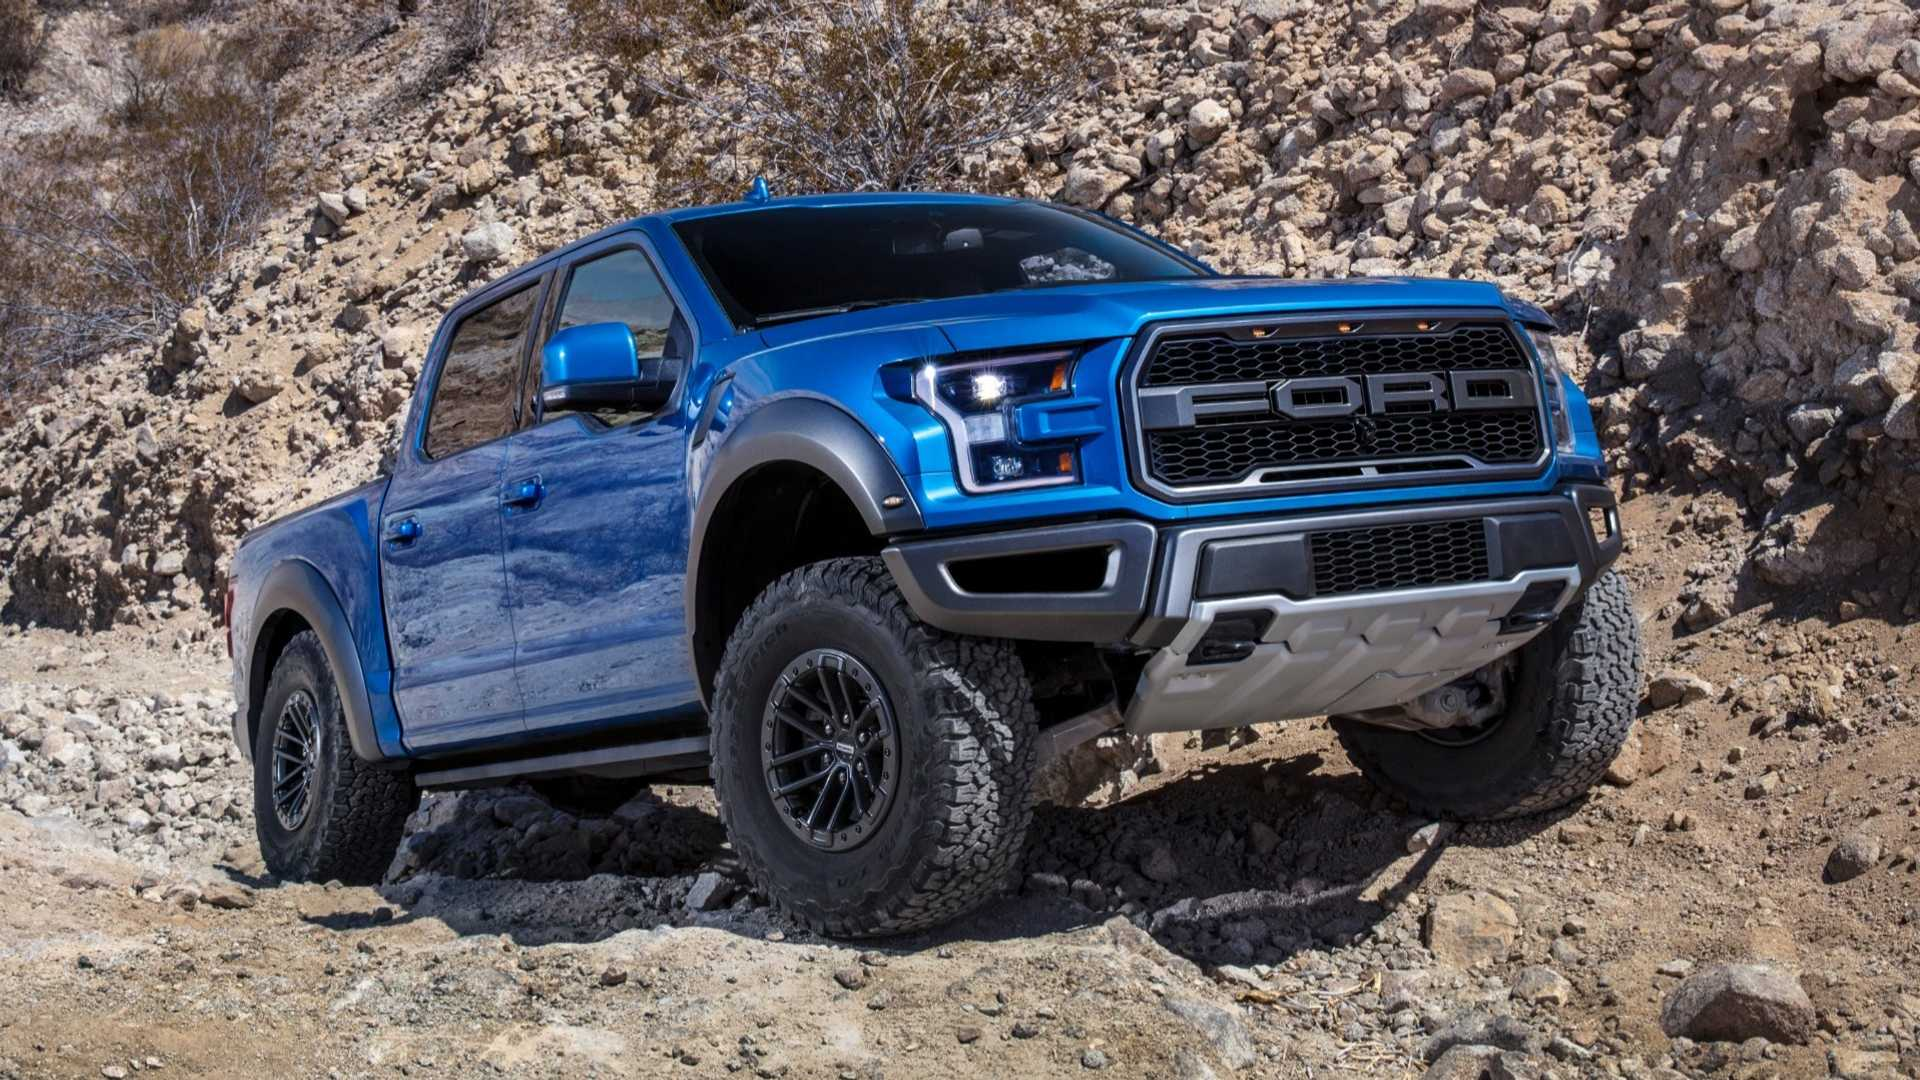 61 Concept of 2019 Ford F150 Quad Cab First Drive Photos by 2019 Ford F150 Quad Cab First Drive